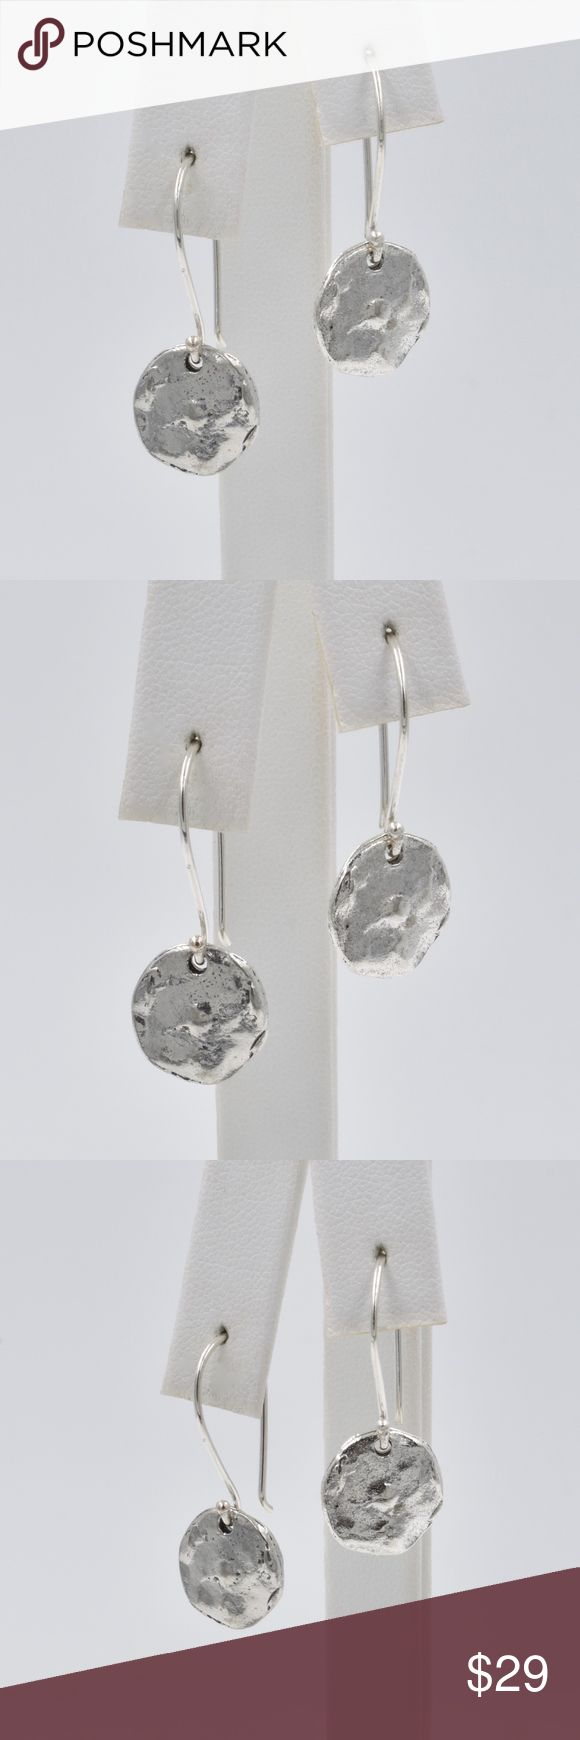 "Silver Disc Dangle Earrings on Shepherds Hook Very cool hipster look earrings.  These dangles will go with any look and will become your everyday earring.  The shepherds hooks are sterling silver and the hammered discs are silver tone metal.  The disc is about 7/16"" and the earring dangles about 1 1/4"". Jewelry Earrings"